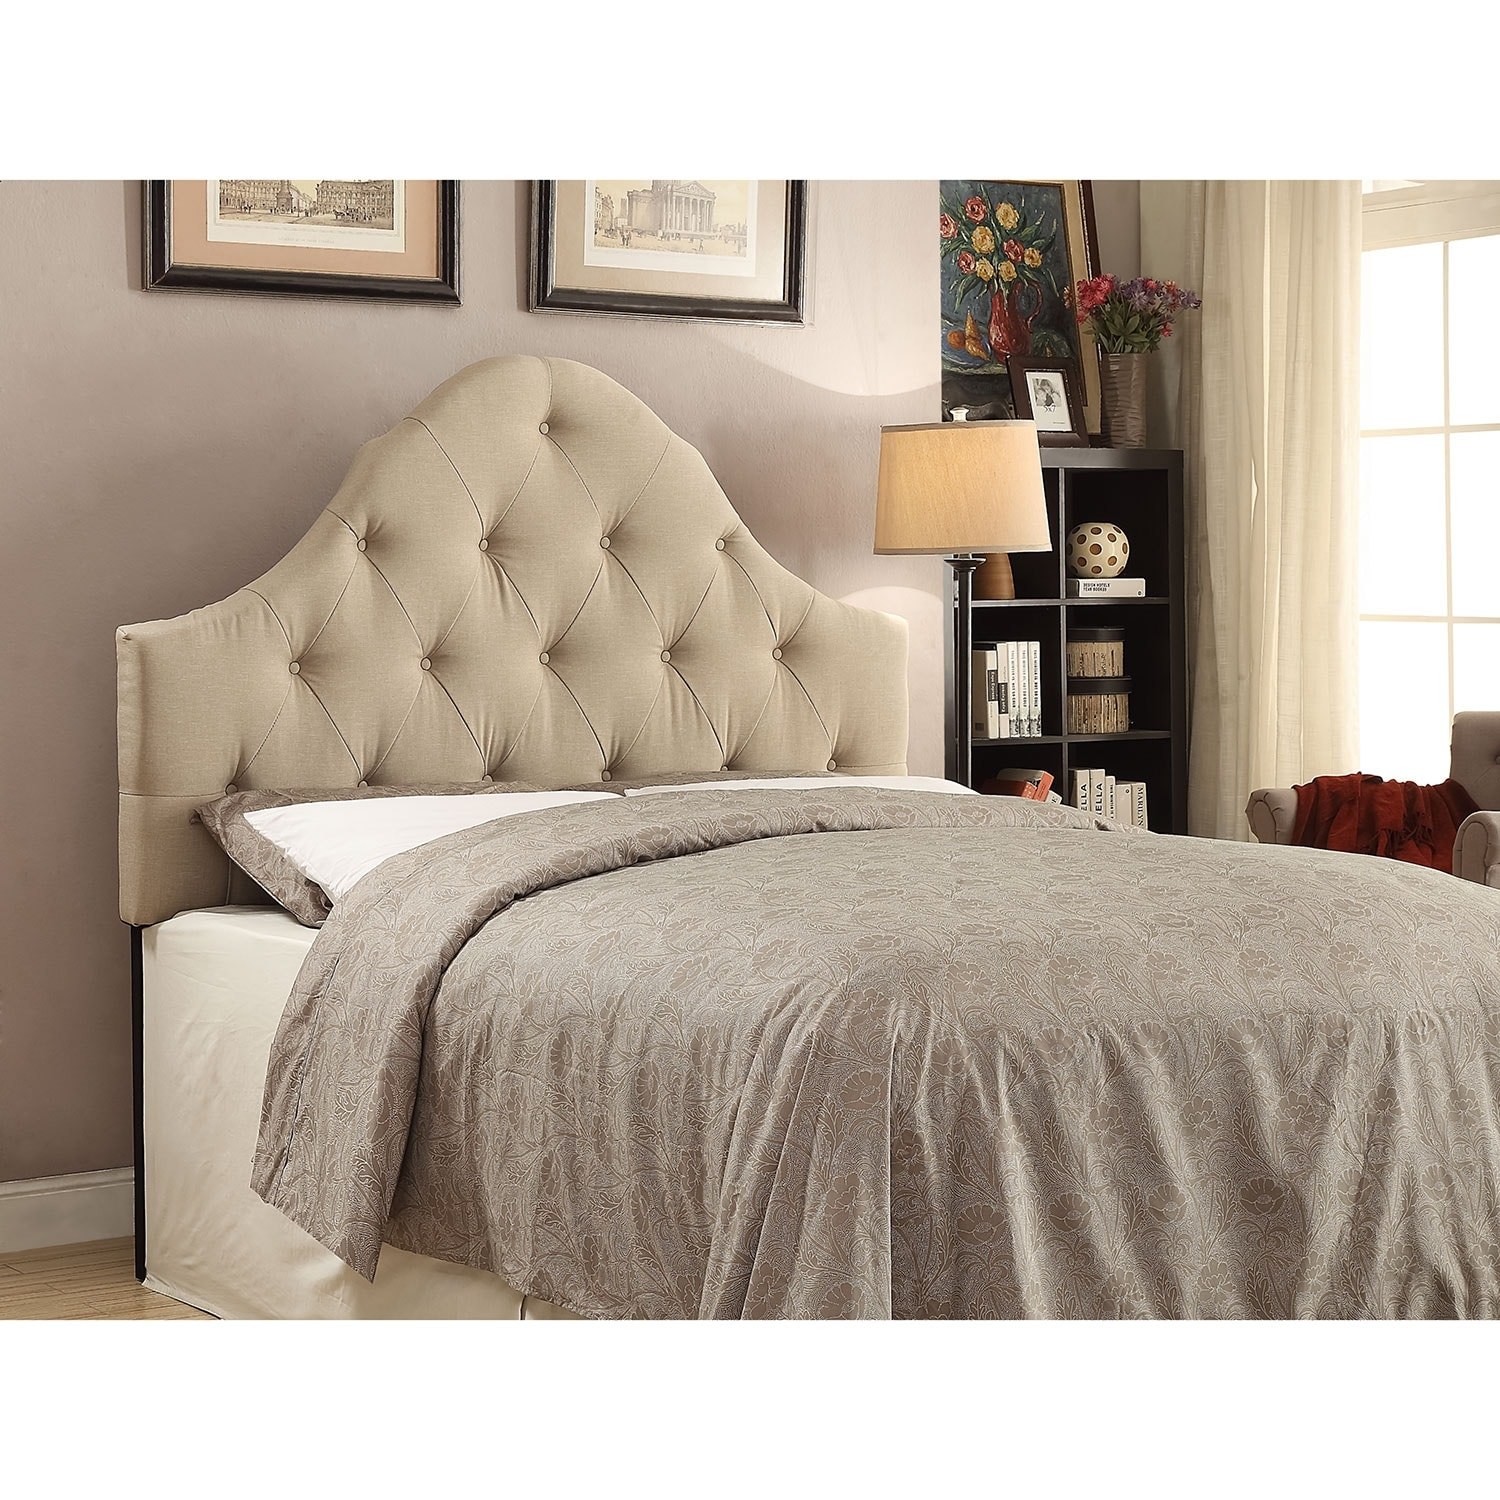 Bedroom Furniture - Brittany Full/Queen Upholstered Headboard